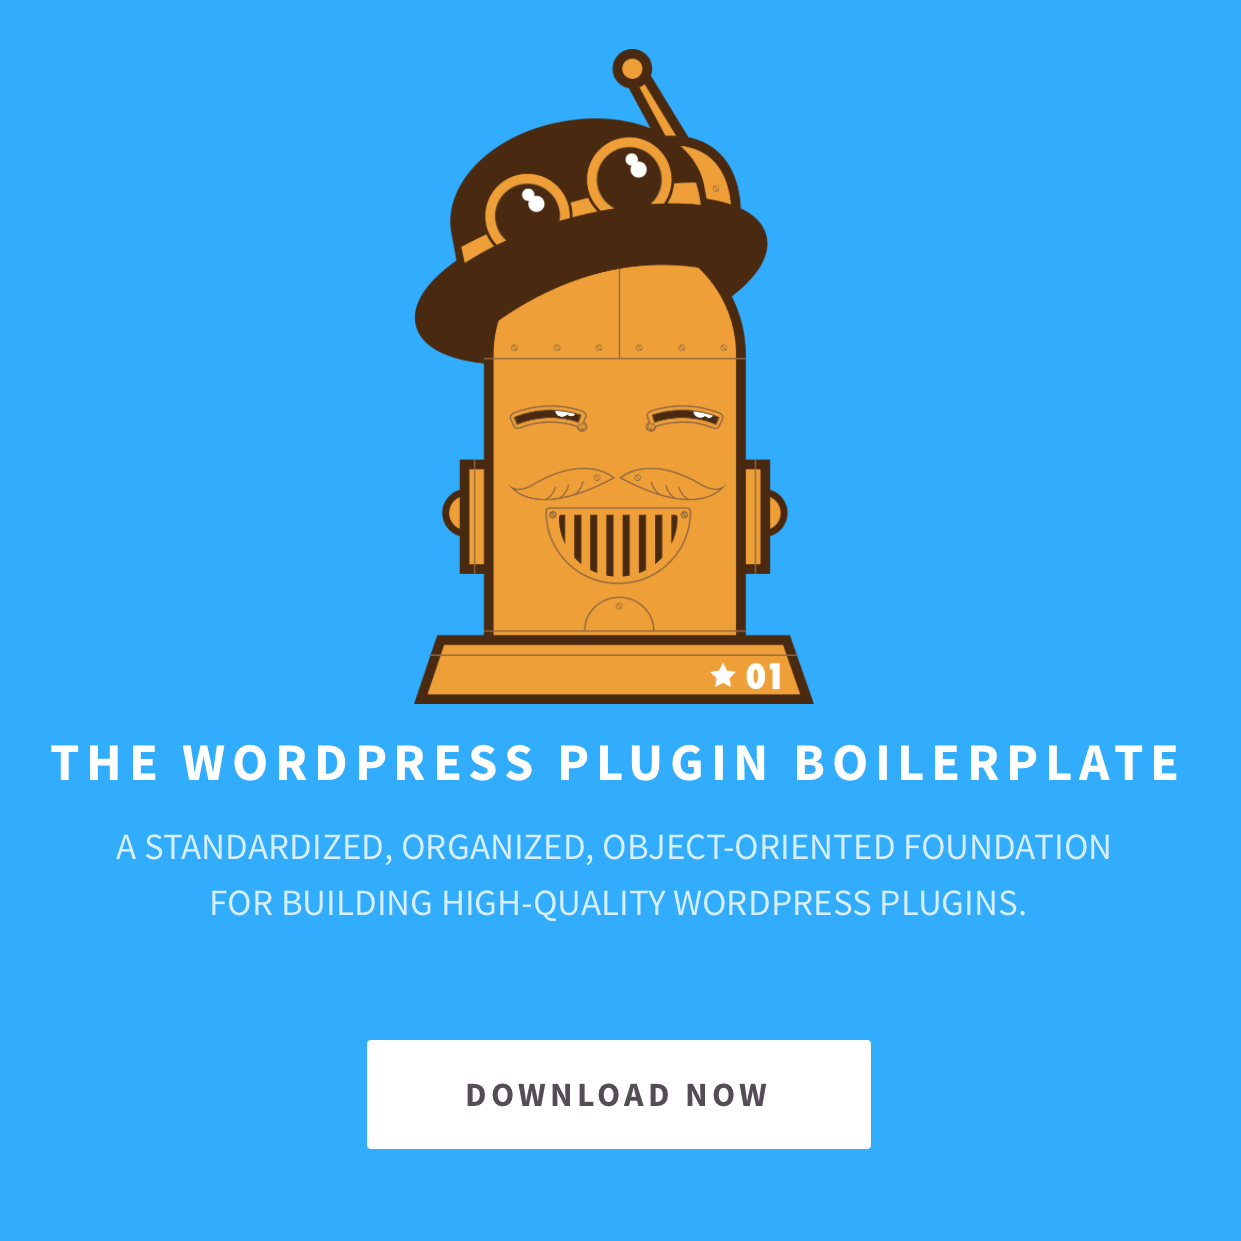 wp plugin boilerplate